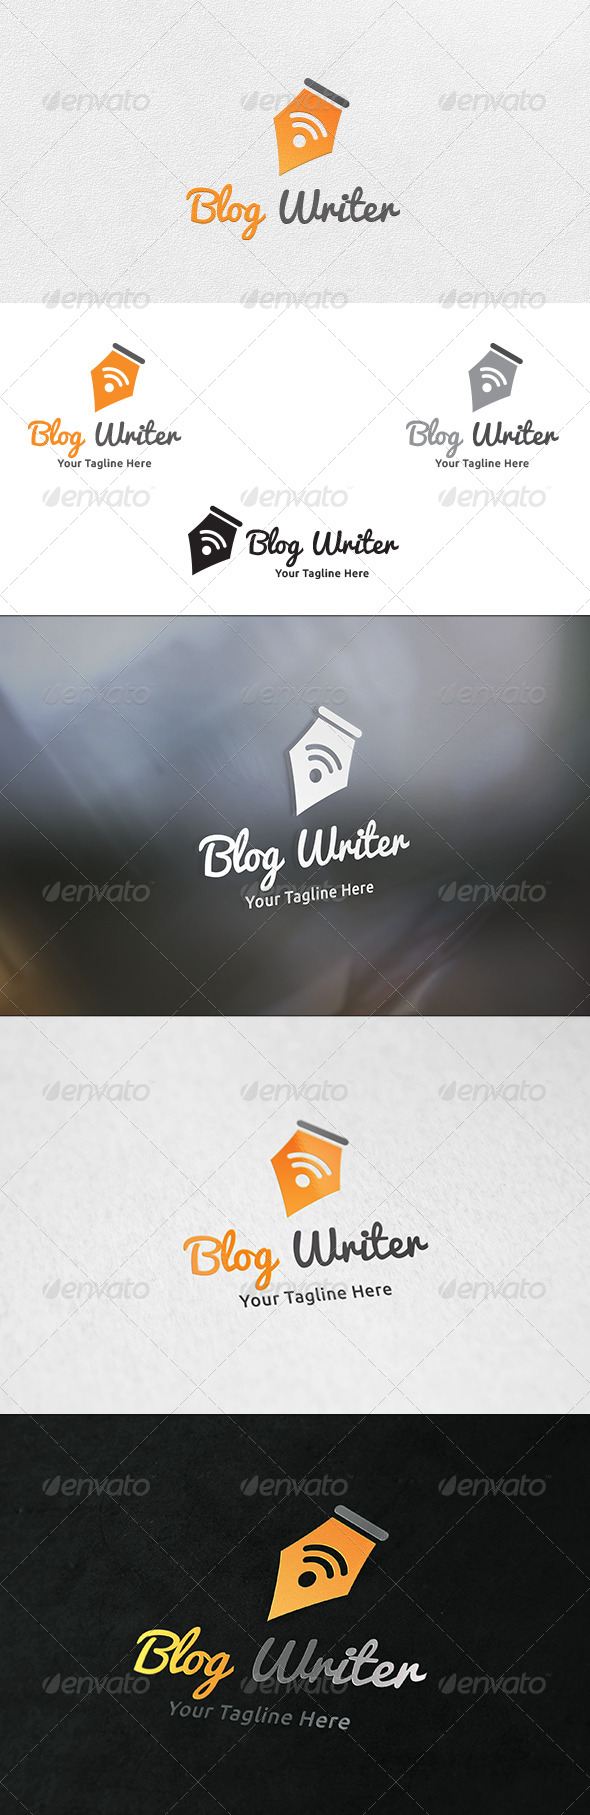 GraphicRiver Blog Writer Logo Template 6379189